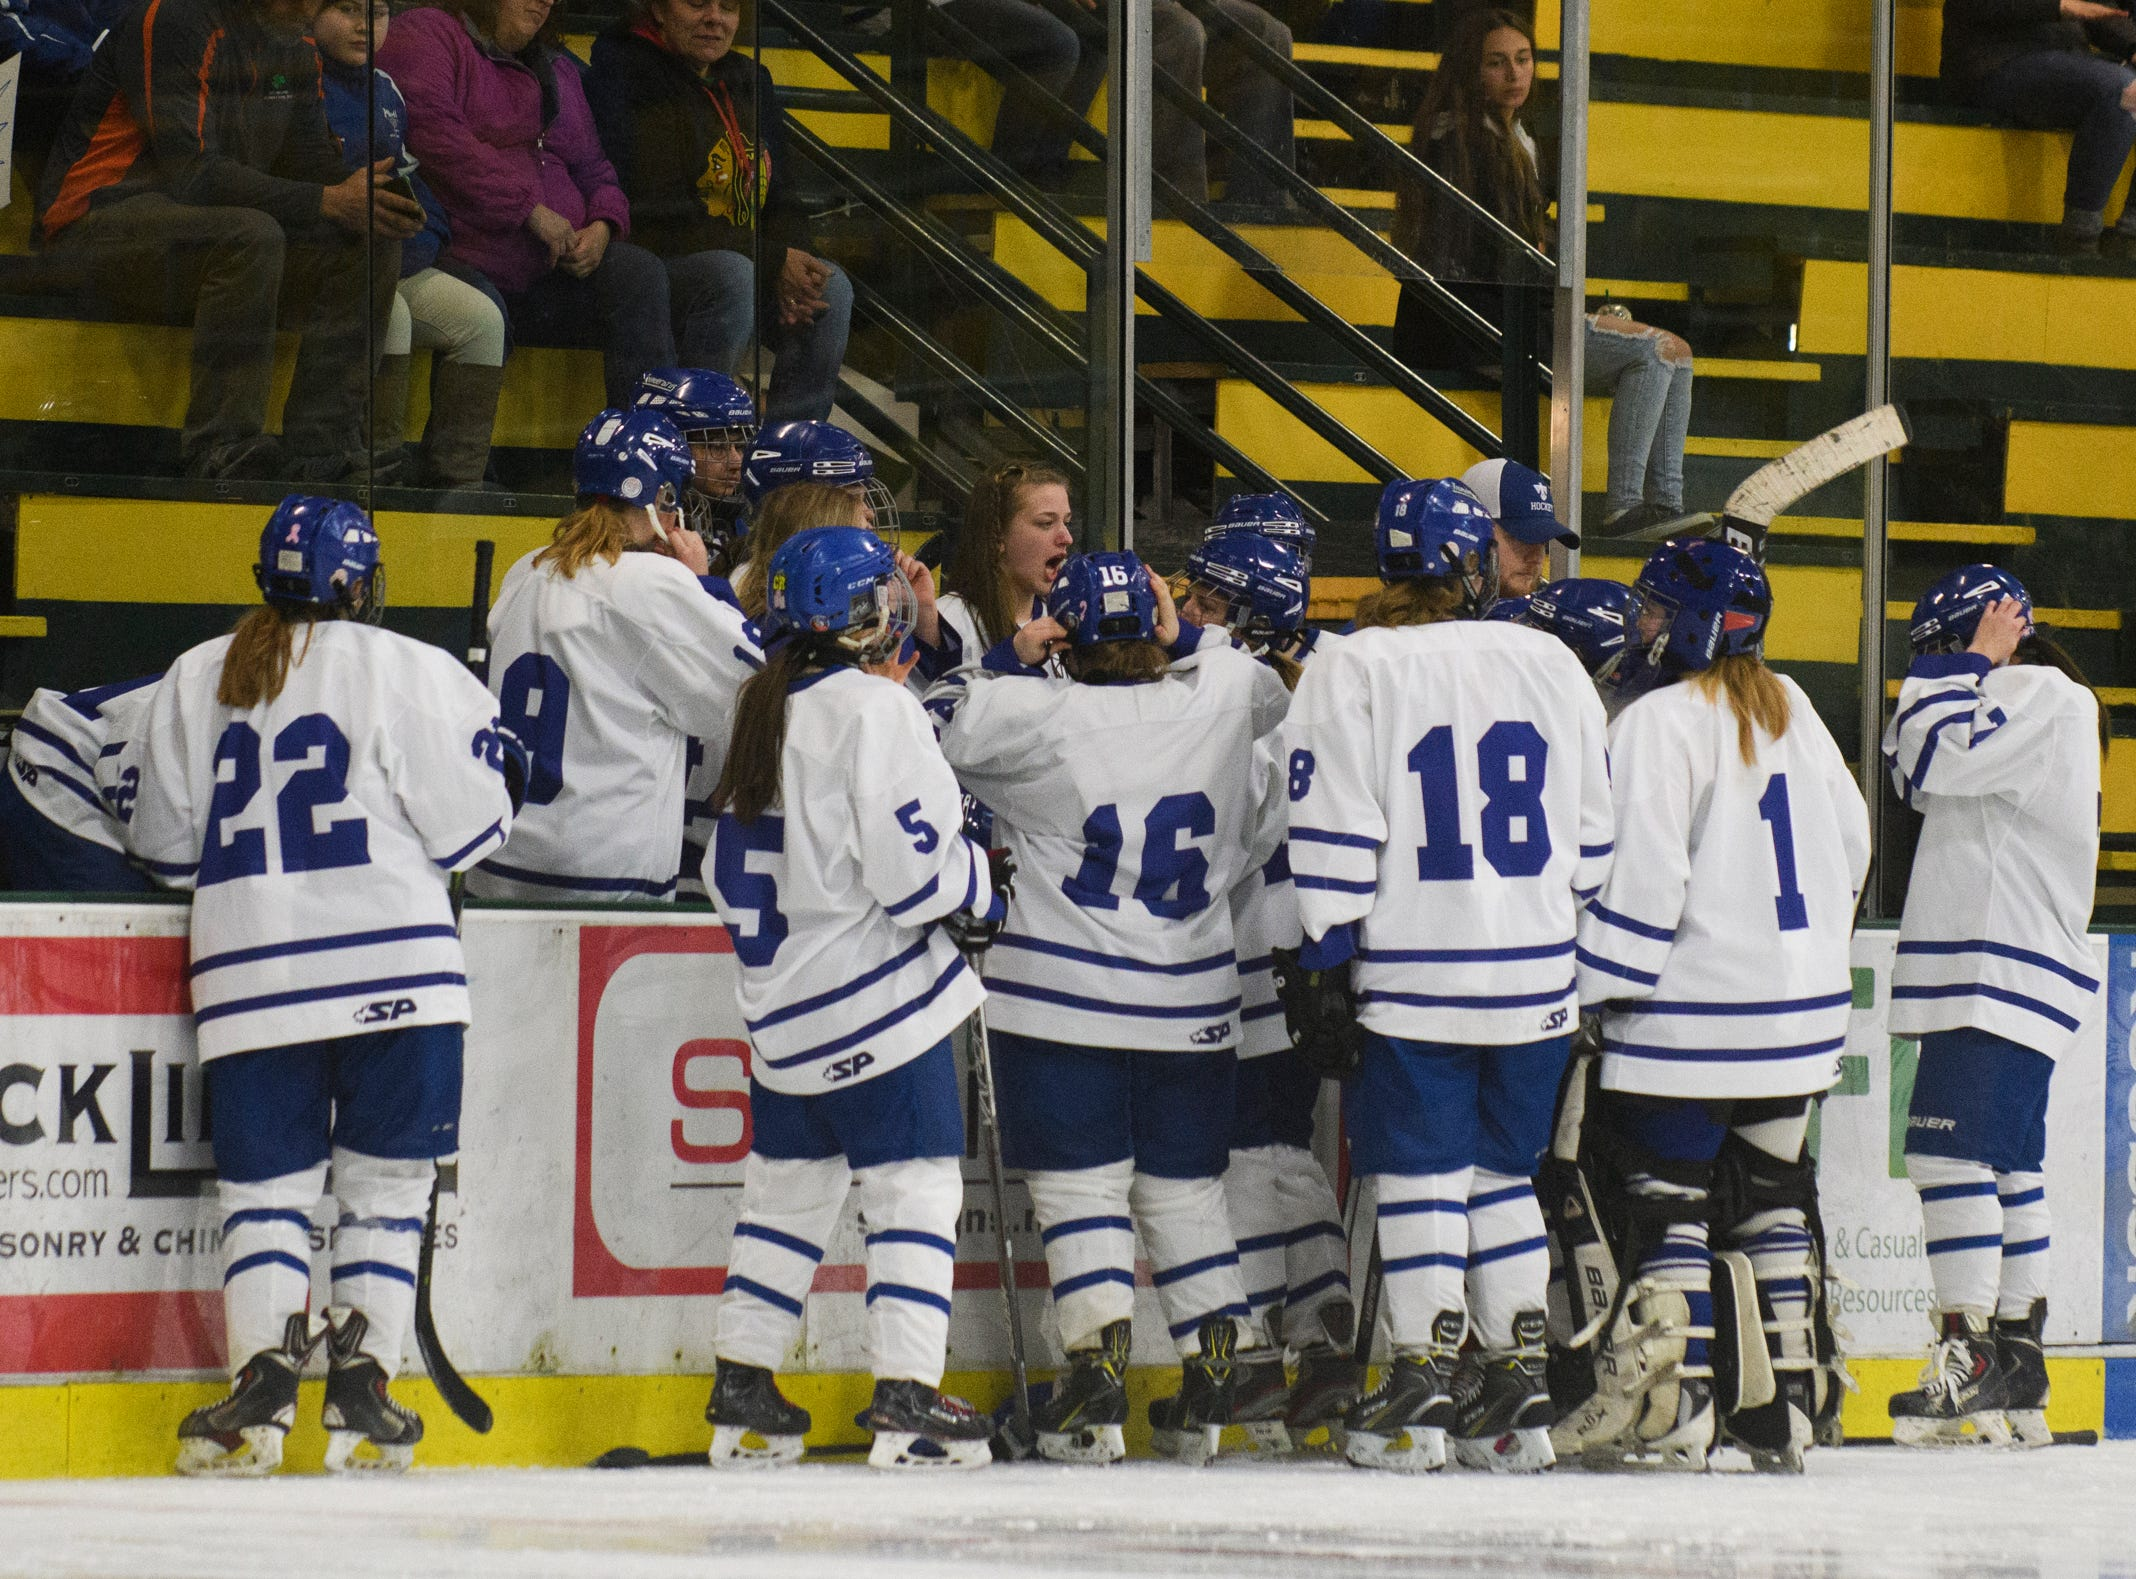 Missisquoi huddles together during the DII girls hockey championship game between the Woodstock Wasps and the Missisquoi Thunderbirds at Gutterson Field House on Thursday night March 14, 2019 in Burlington, Vermont.